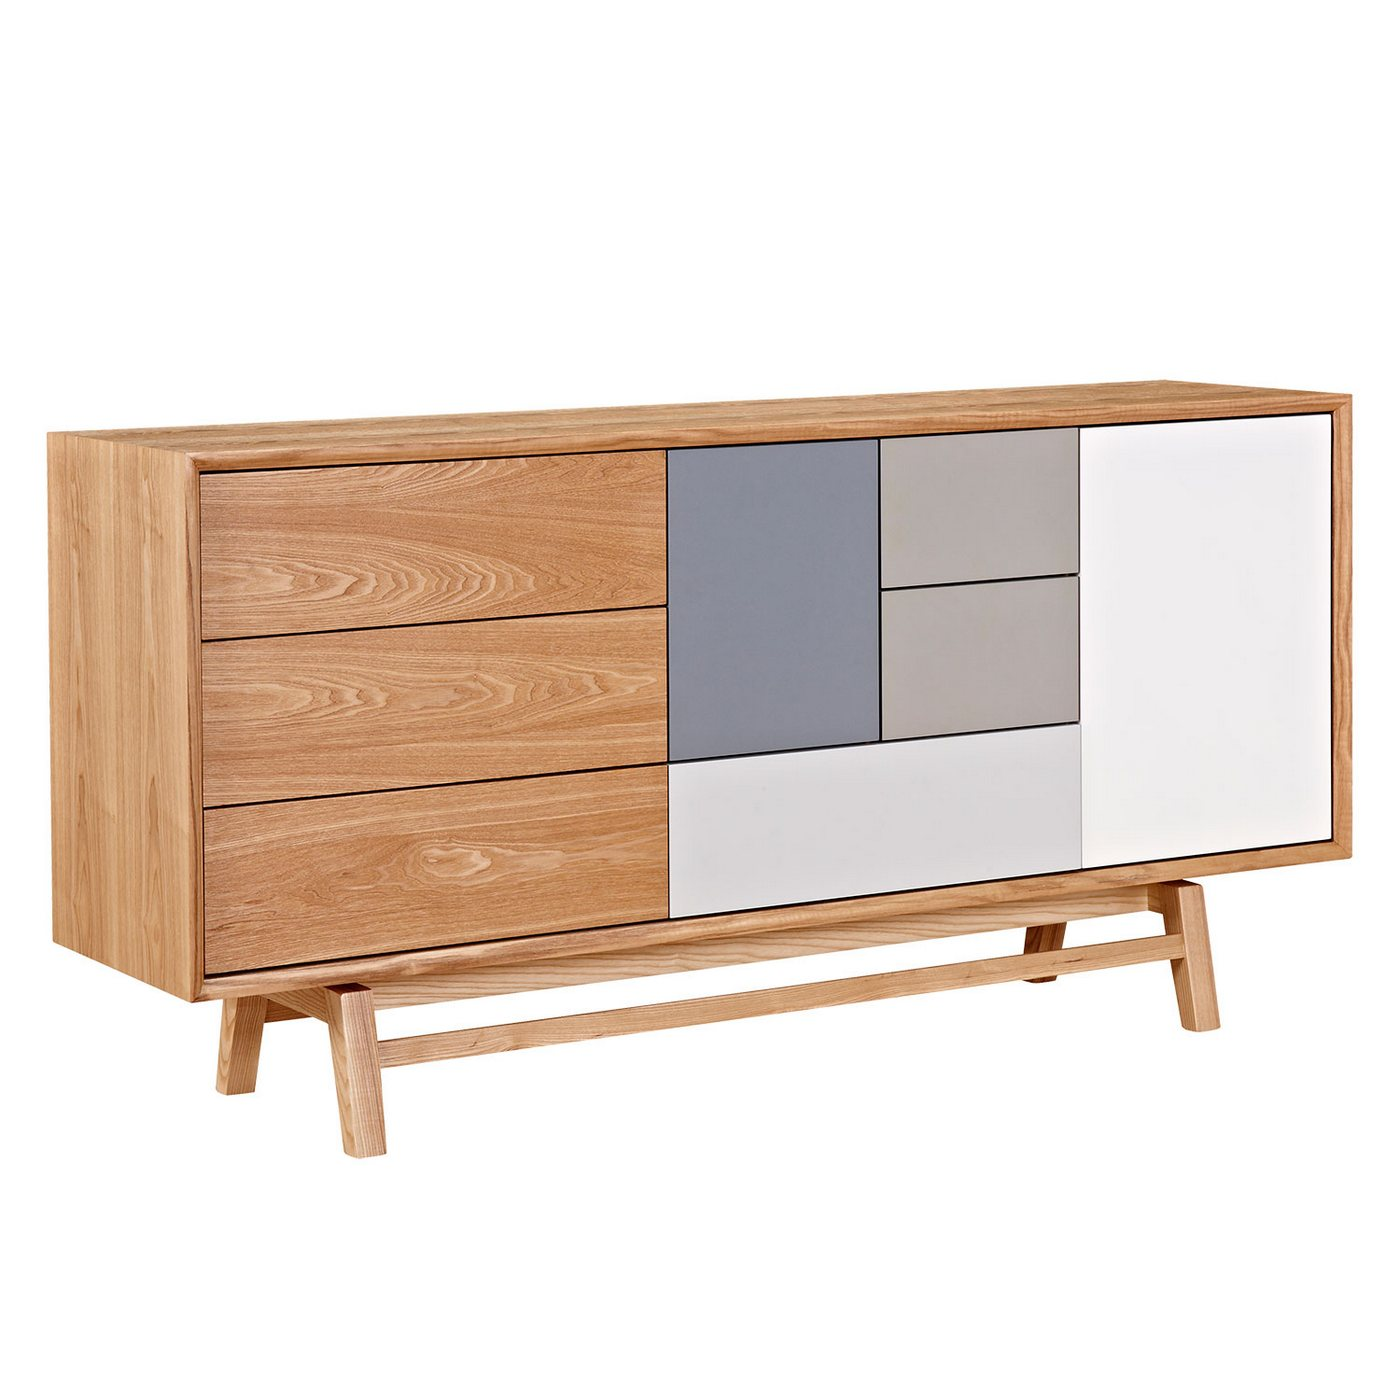 Cheap Modern Furniture Dallas: Grane Mid-Century Modern Sideboard W/ Multi-colored Panels